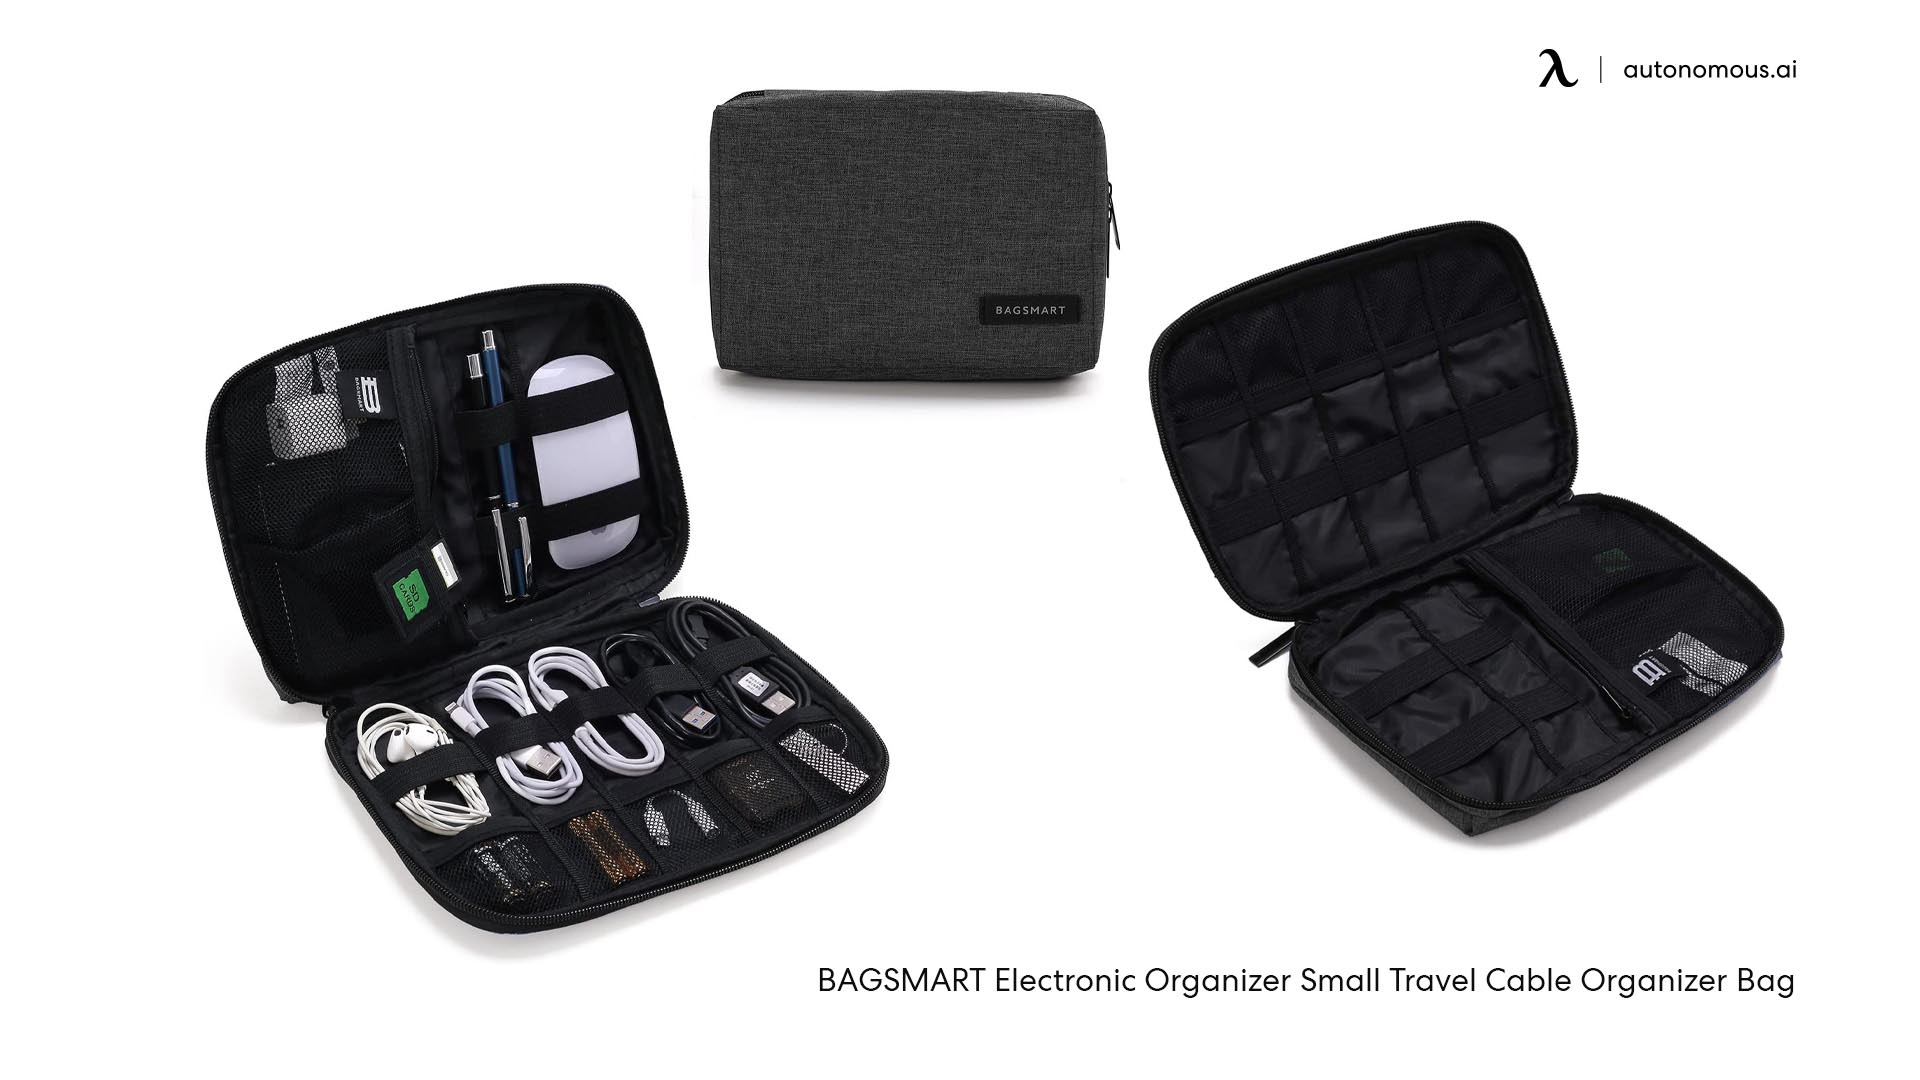 Cables organizers bags - cable management accessories